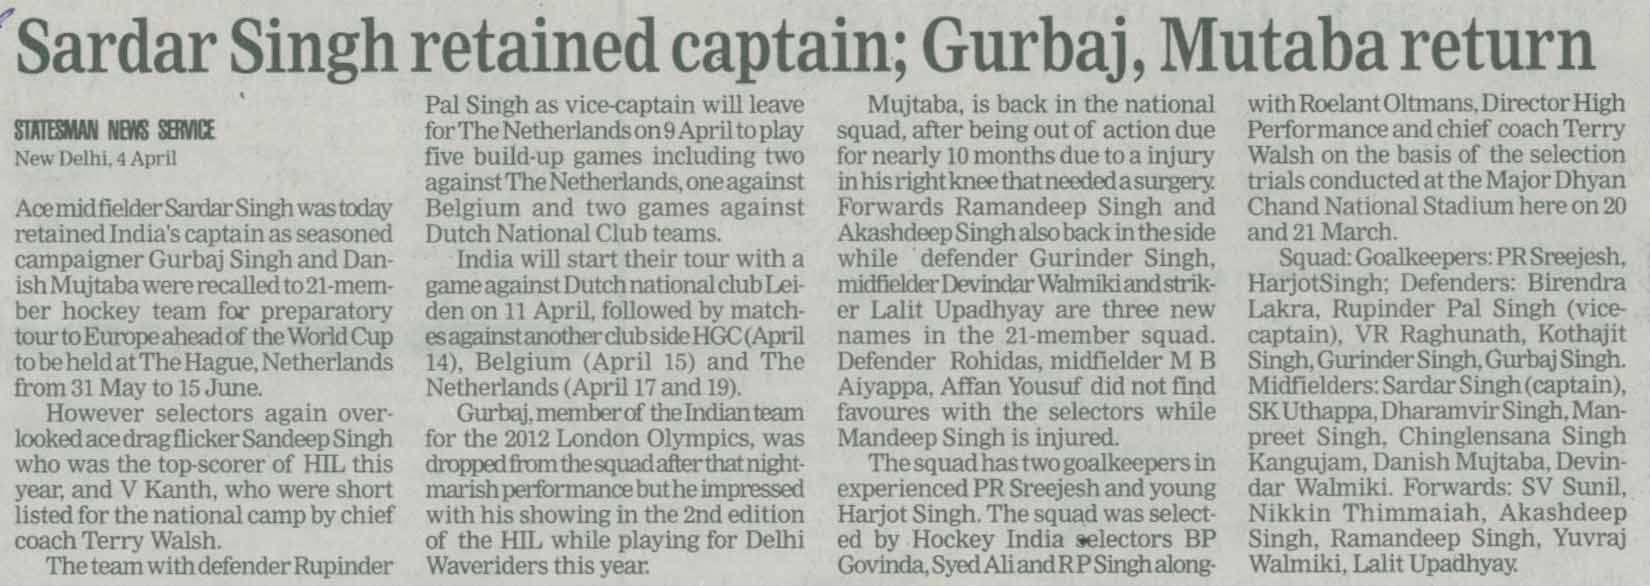 Sardar Singh retained captain; Gurbaj, Mutaba return